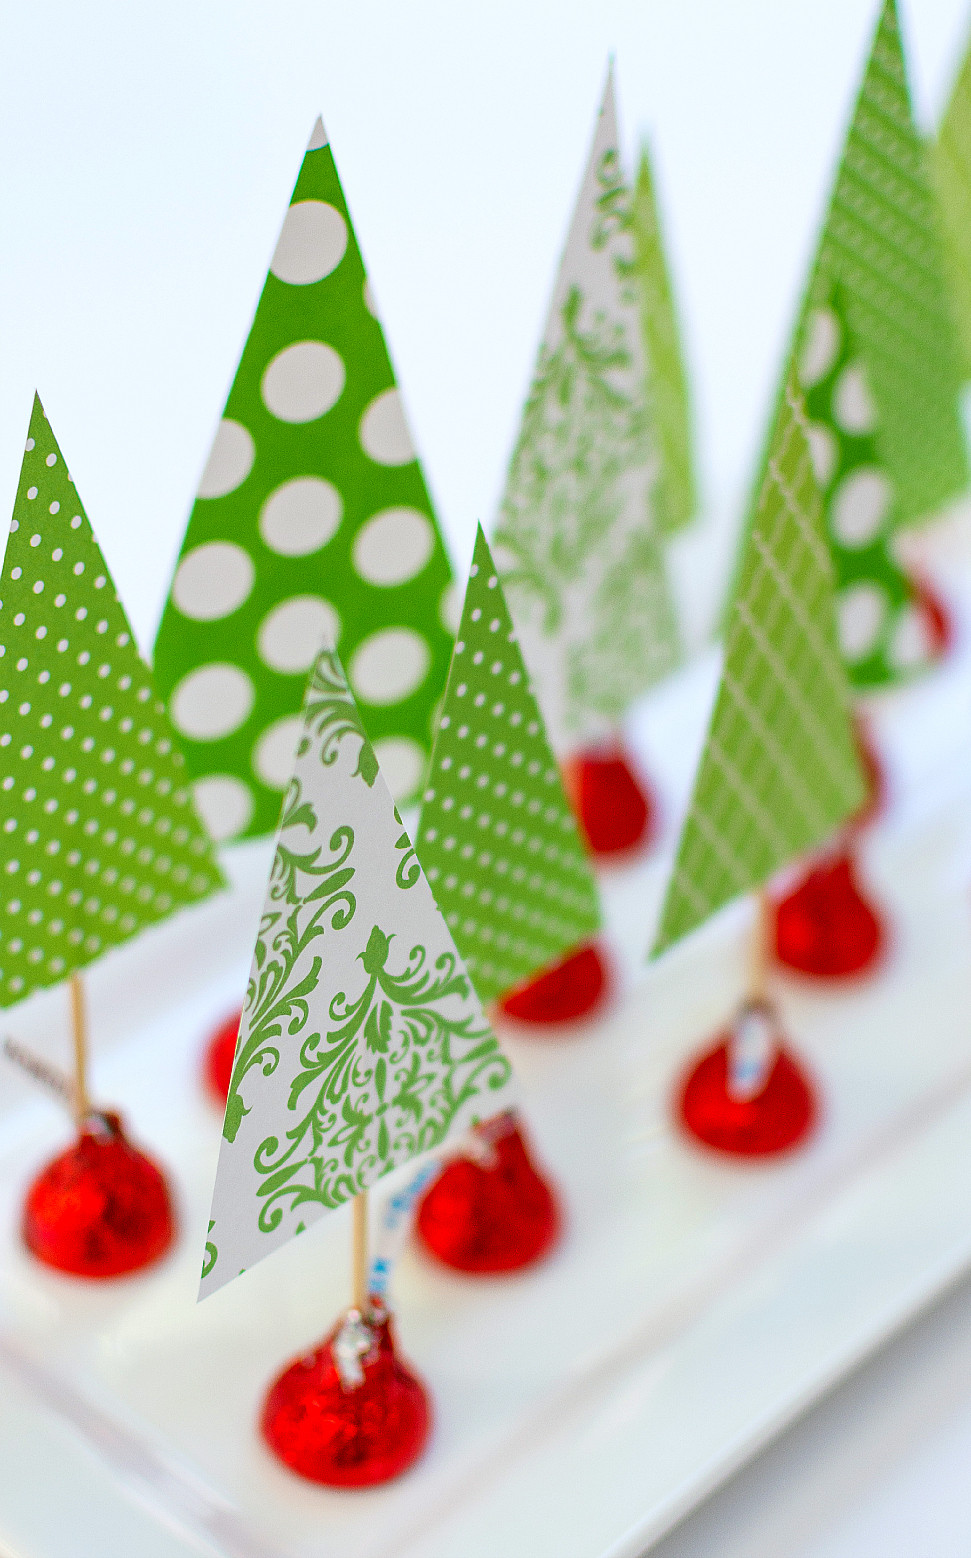 Best ideas about Christmas Craft Ideas For Kids . Save or Pin Christmas Crafts with Kids Now.